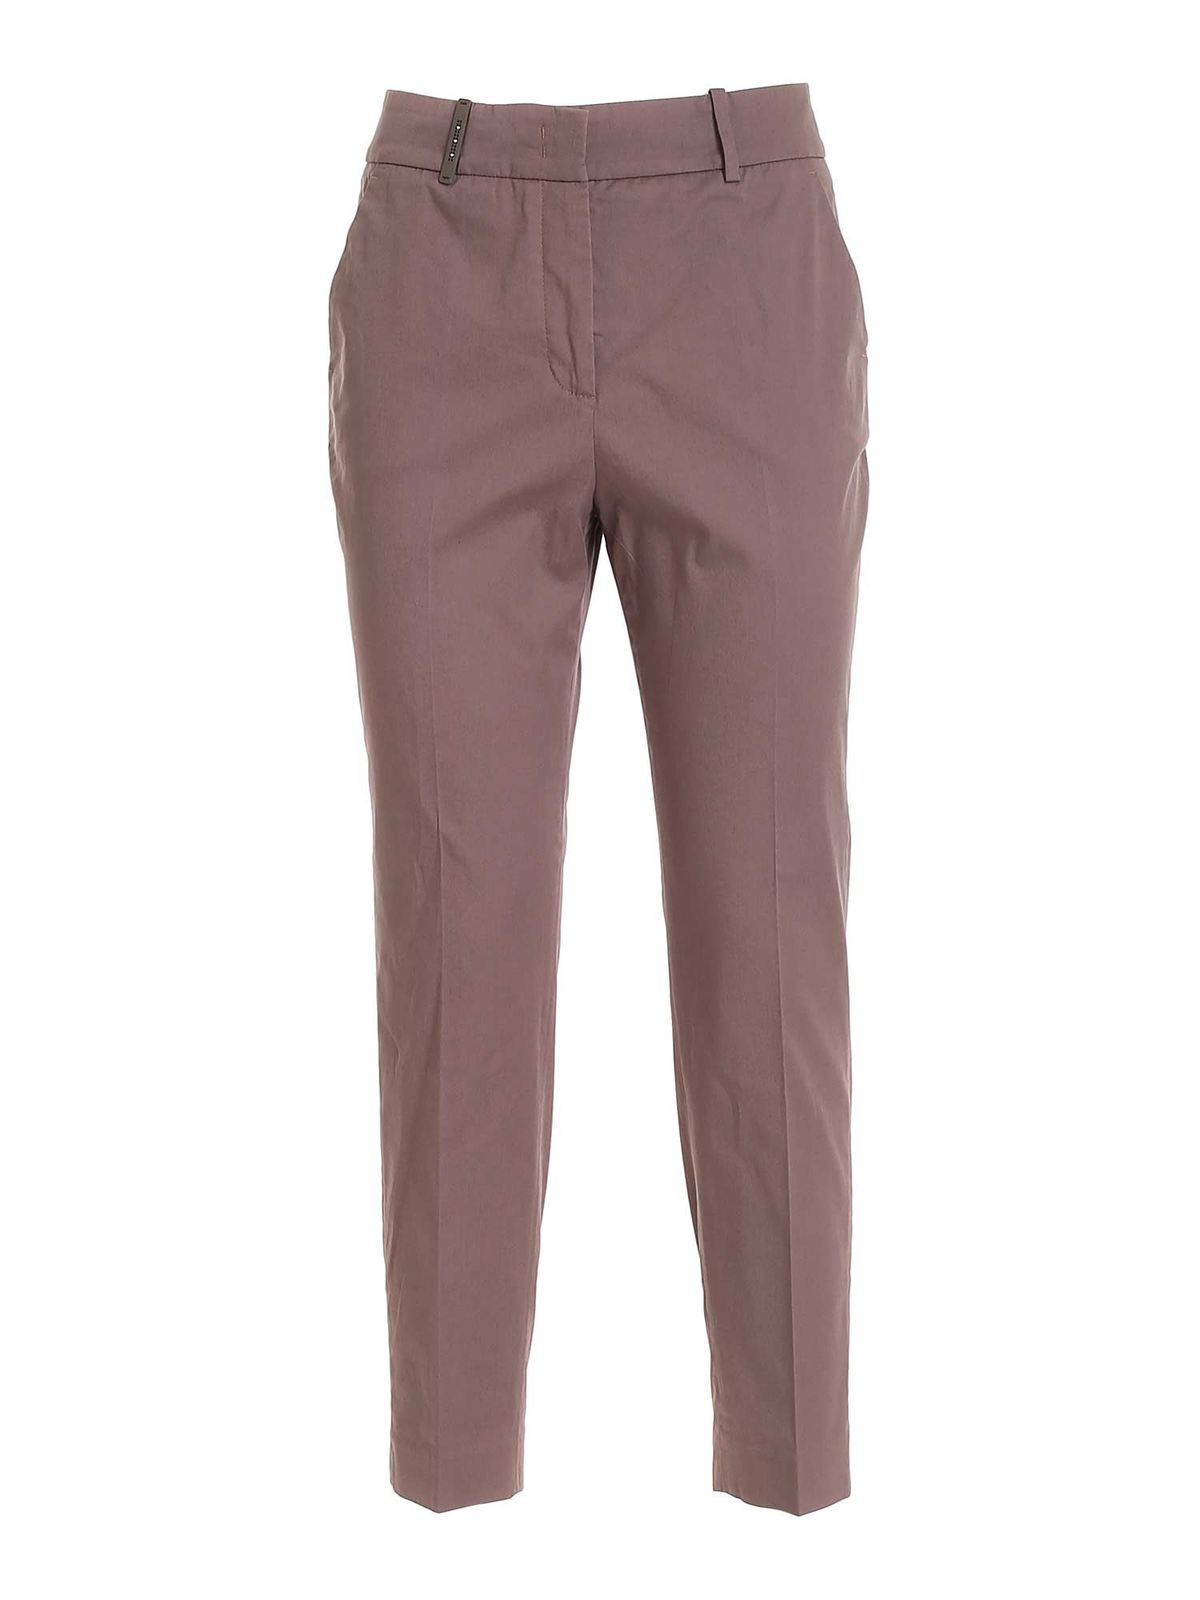 Peserico COTTON PANTS IN BROWN